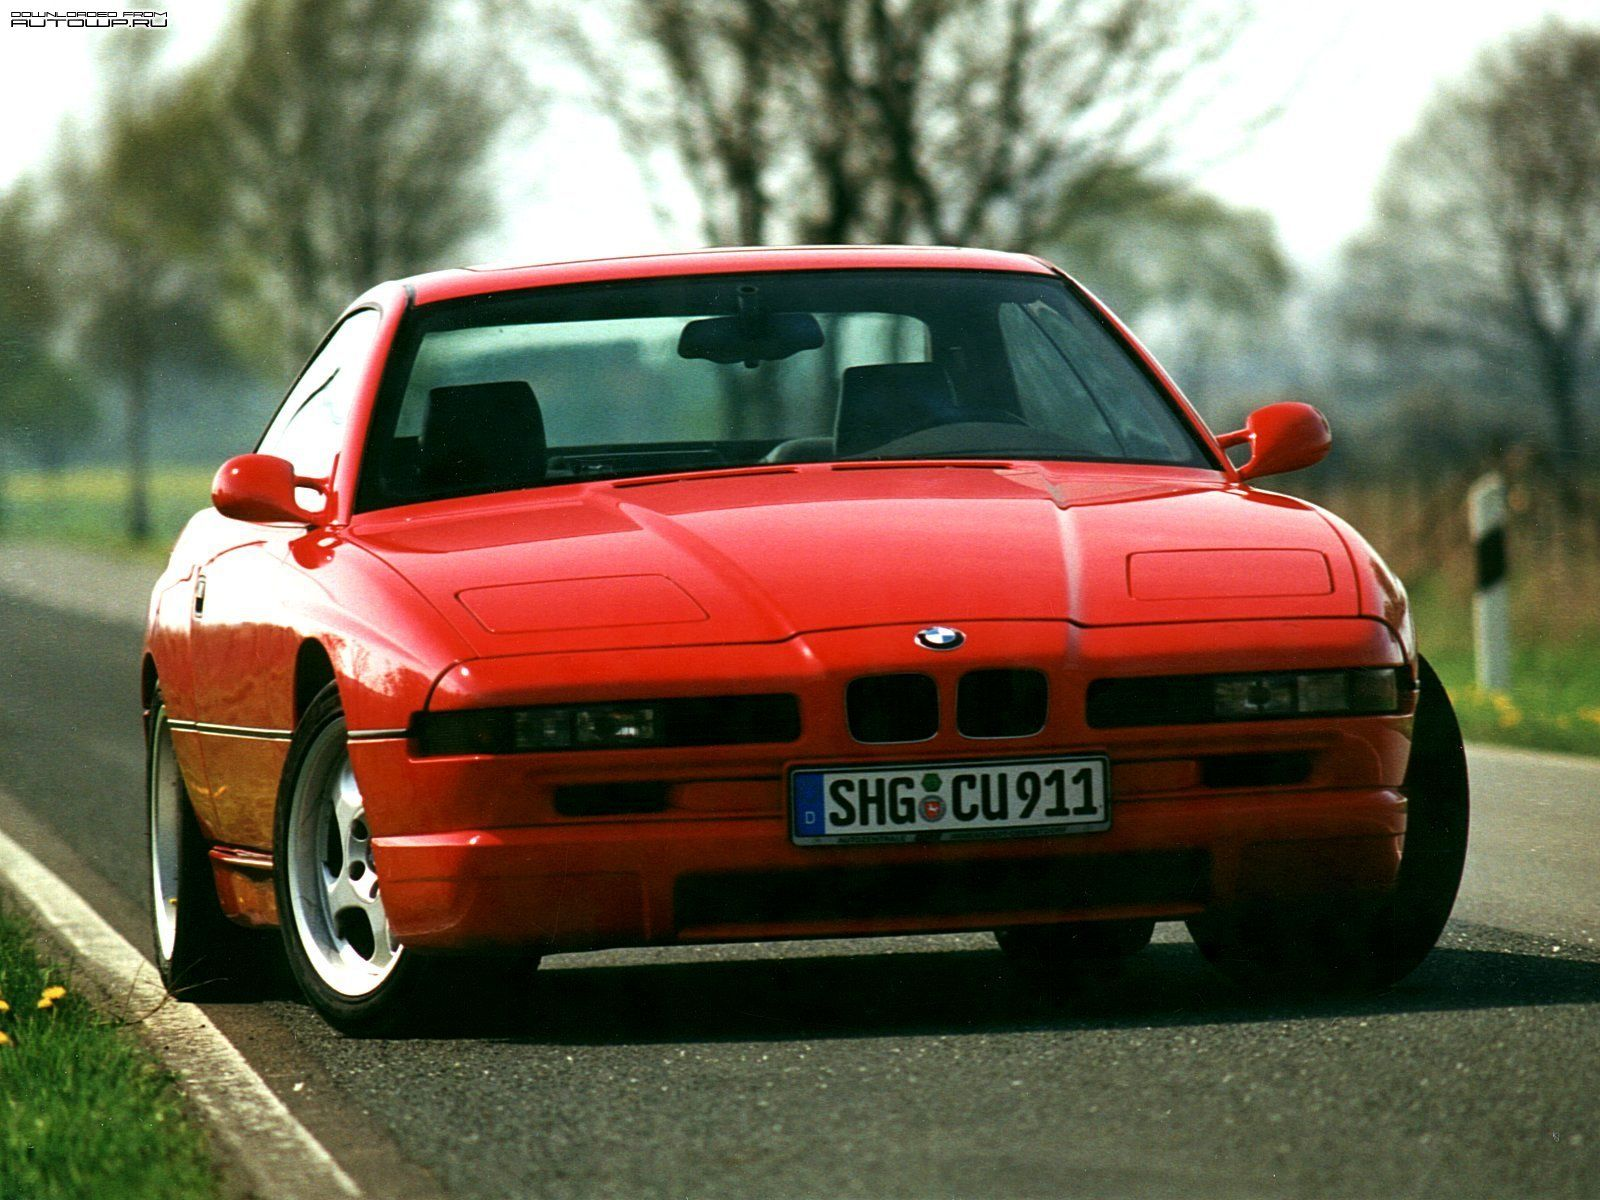 BMW 8 Series (E31) Sports Cars For Sale The Grand Tourer BMW 8 ...